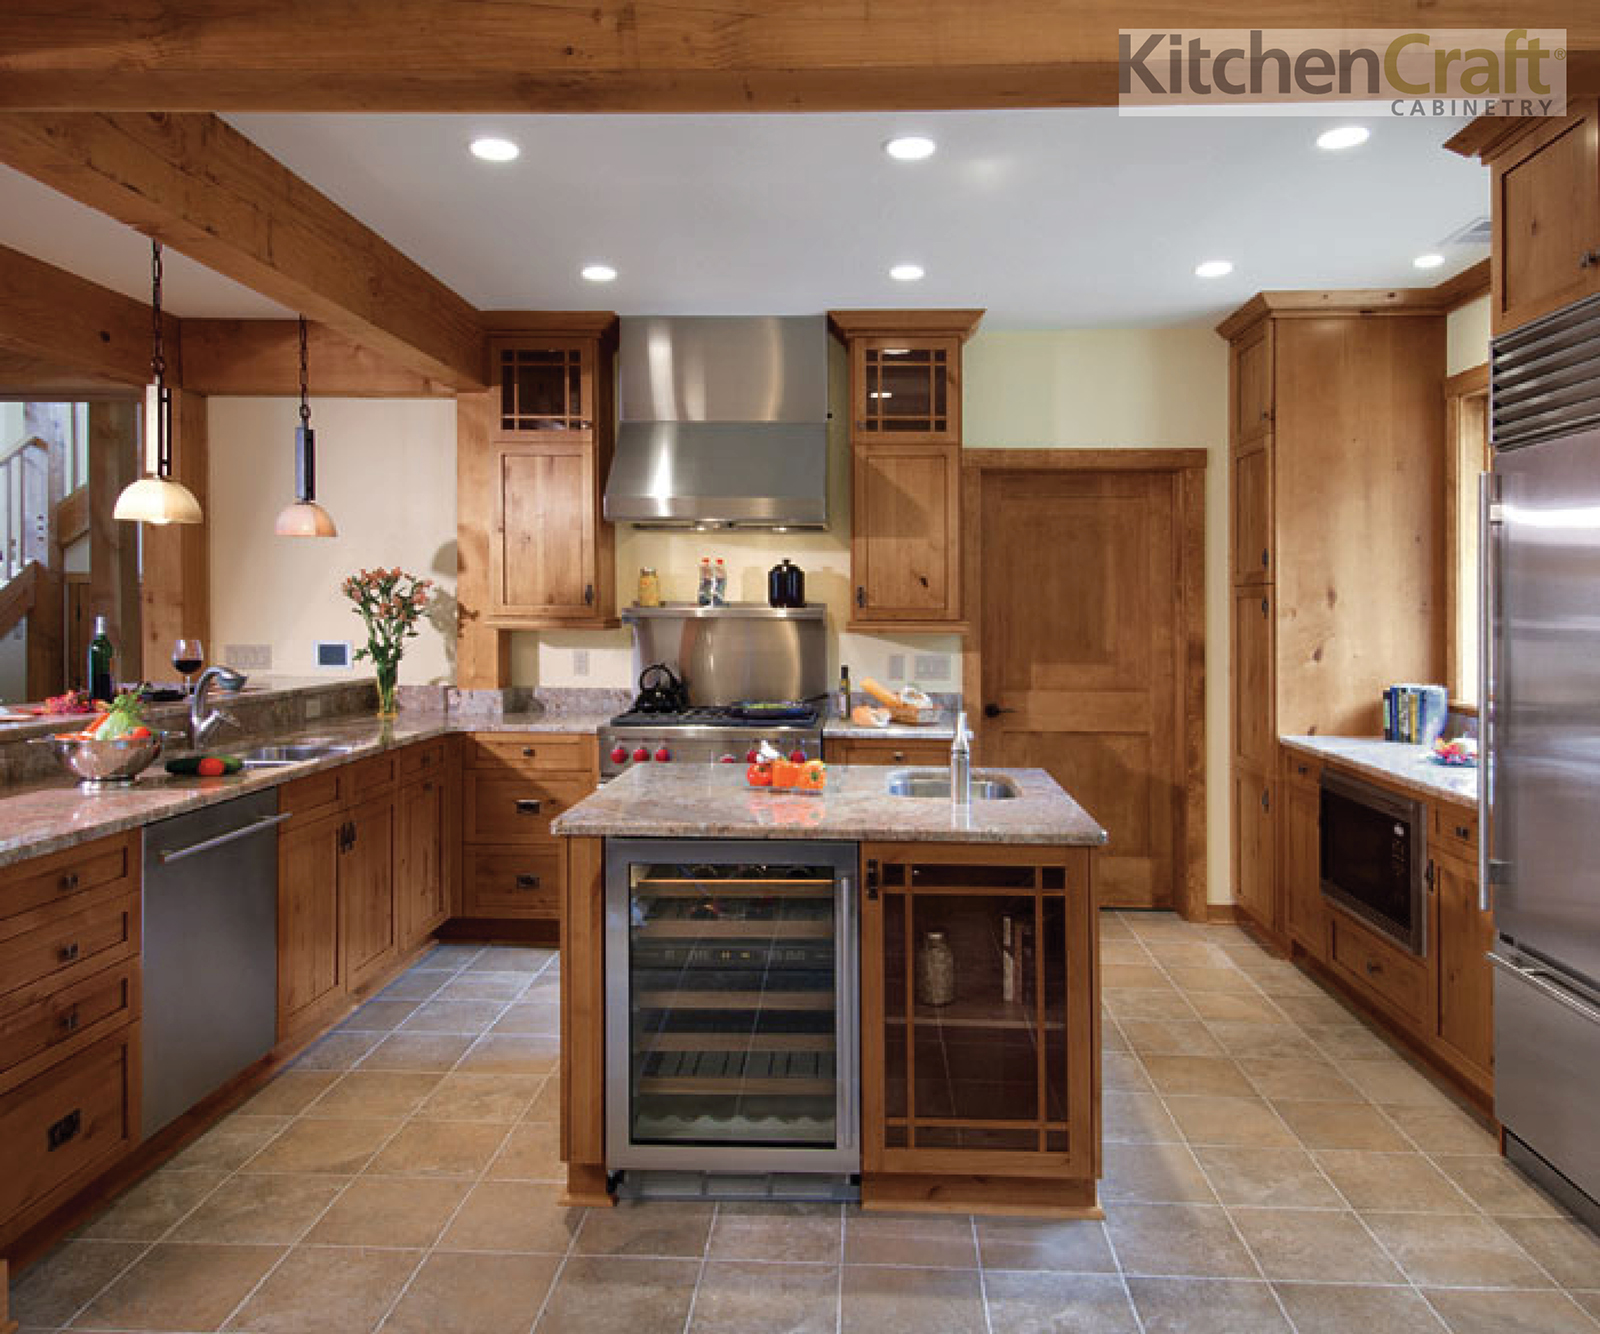 Example of kitchen remodeling design